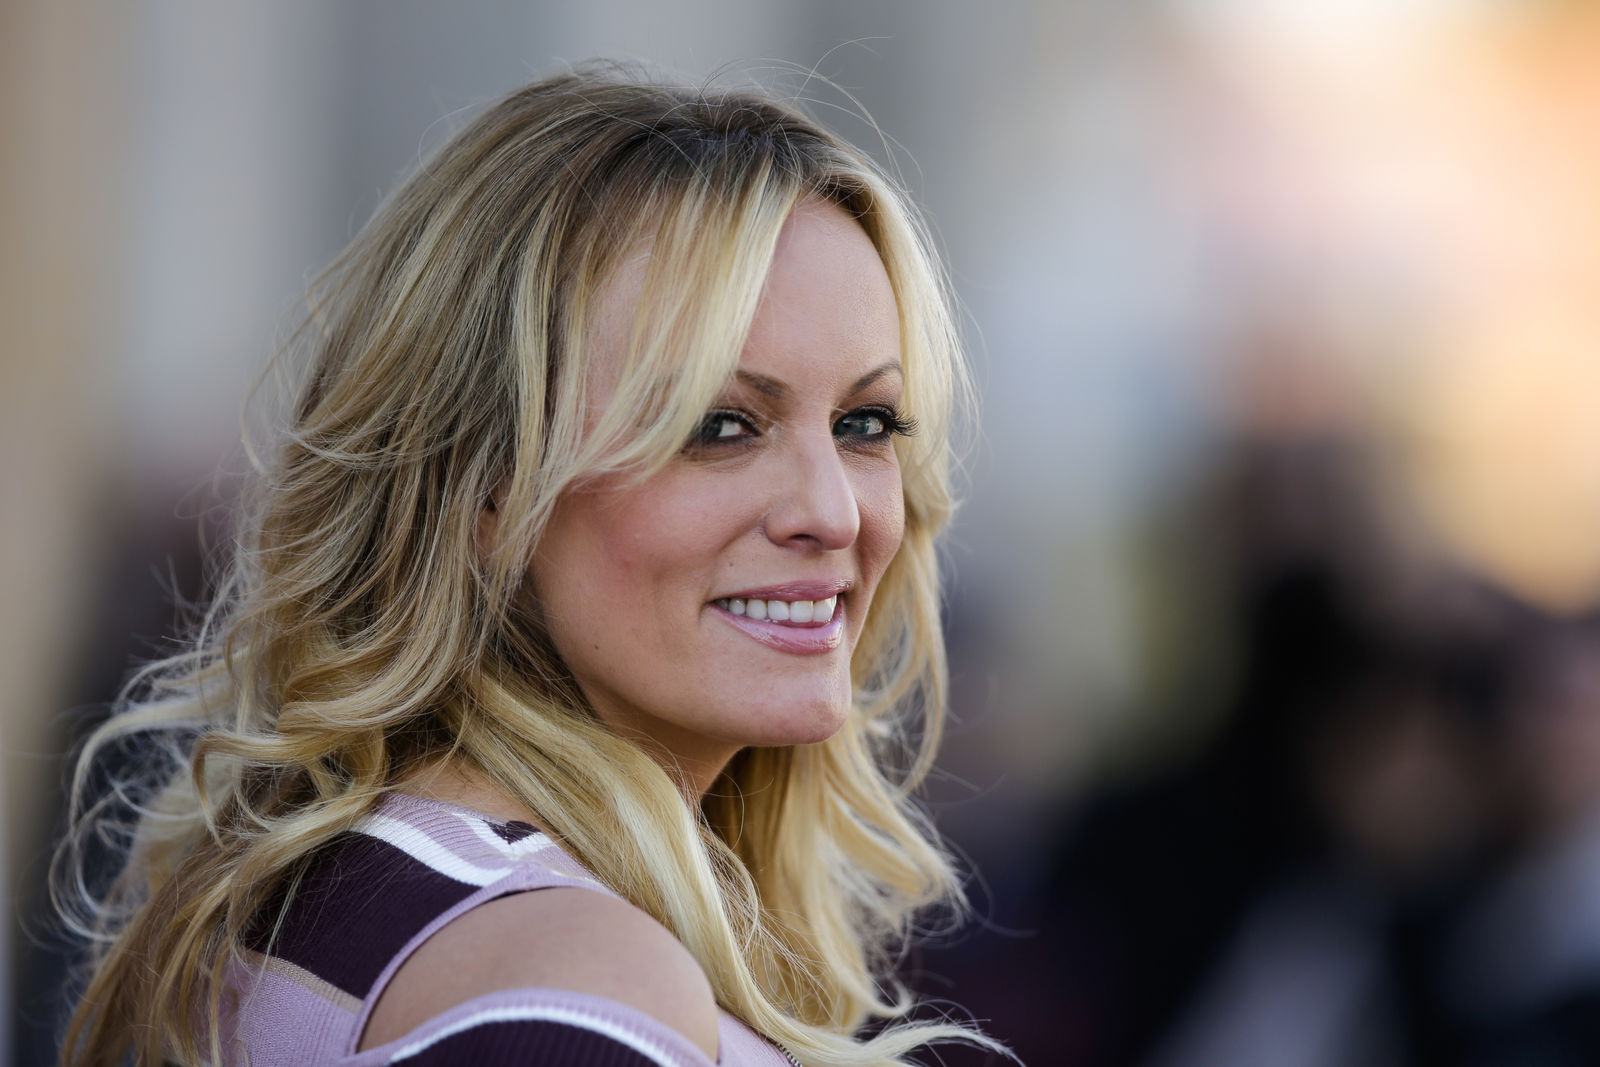 FILE - In this Oct. 11, 2018, file photo, adult film actress Stormy Daniels attends the opening of the adult entertainment fair 'Venus' in Berlin, Germany. Search warrants unsealed Thursday, Jul 18, 2019, shed new light on President Donald Trump's role as his campaign scrambled to respond to media inquiries about hush money paid to two women who said they had affairs with him.{ } (AP Photo/Markus Schreiber, File)